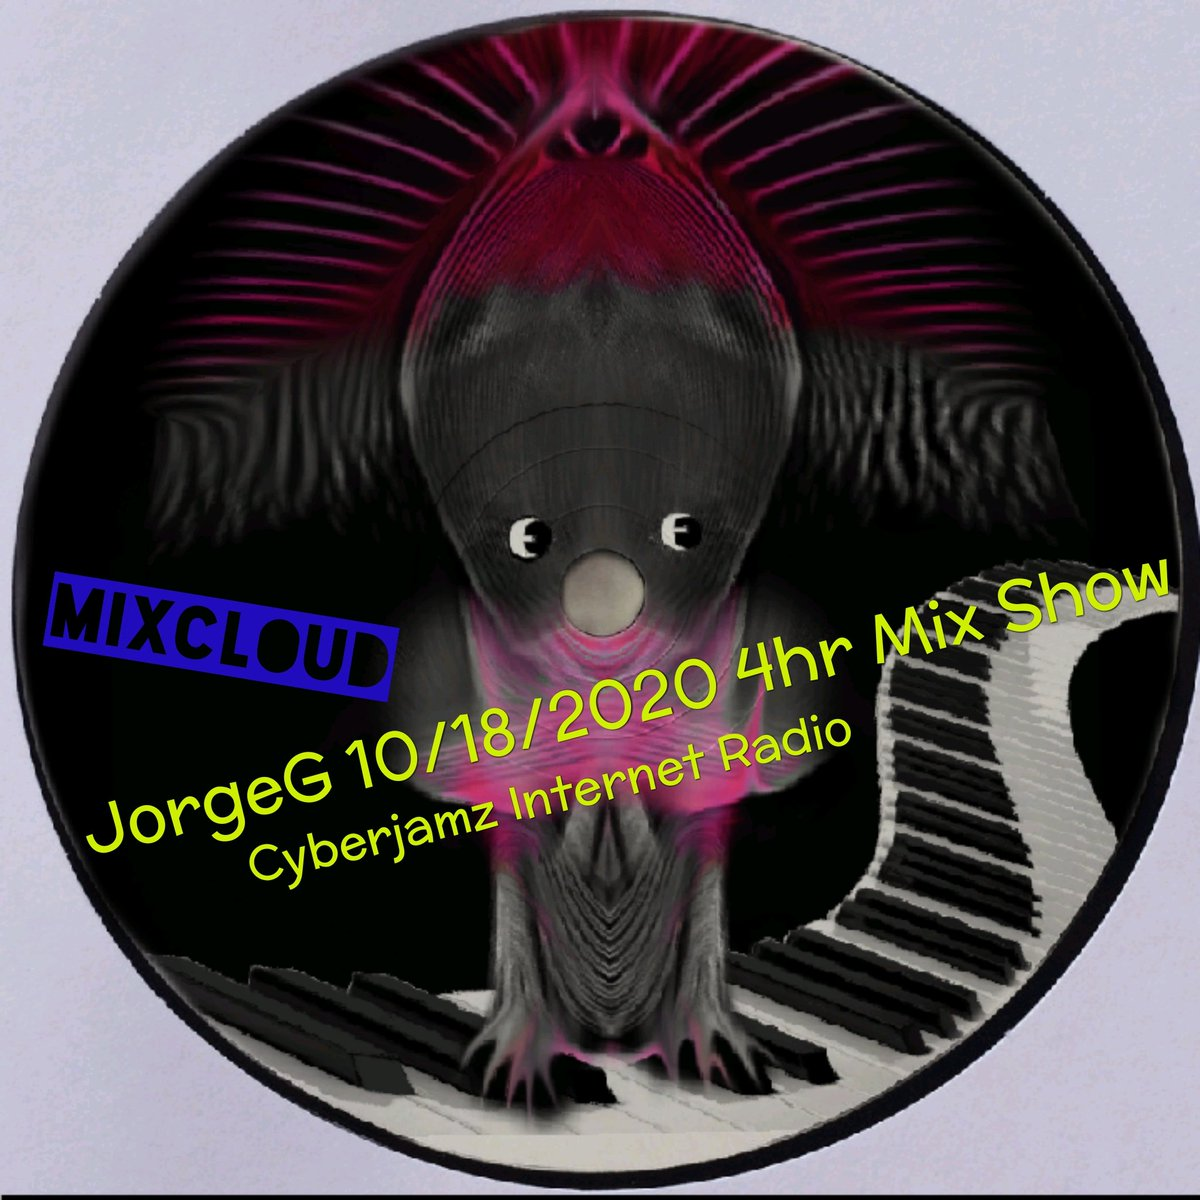 @JorgeG179 ALT #MIXCLOUD LINK My #Sunday 4hr #Mixshow via #Cyberjamz #InternetRadio https://t.co/sMBPziwl5o #Deephouse #Soulfulhouse #Garagehouse #Afrohouse #Housemusic #Techouse #Techno #LarryLevan #NYCParadiseGarage #Dance #Global #NuDisco #Disco #Funky #Dance #Mashups #Dj https://t.co/66v6dlbpoD